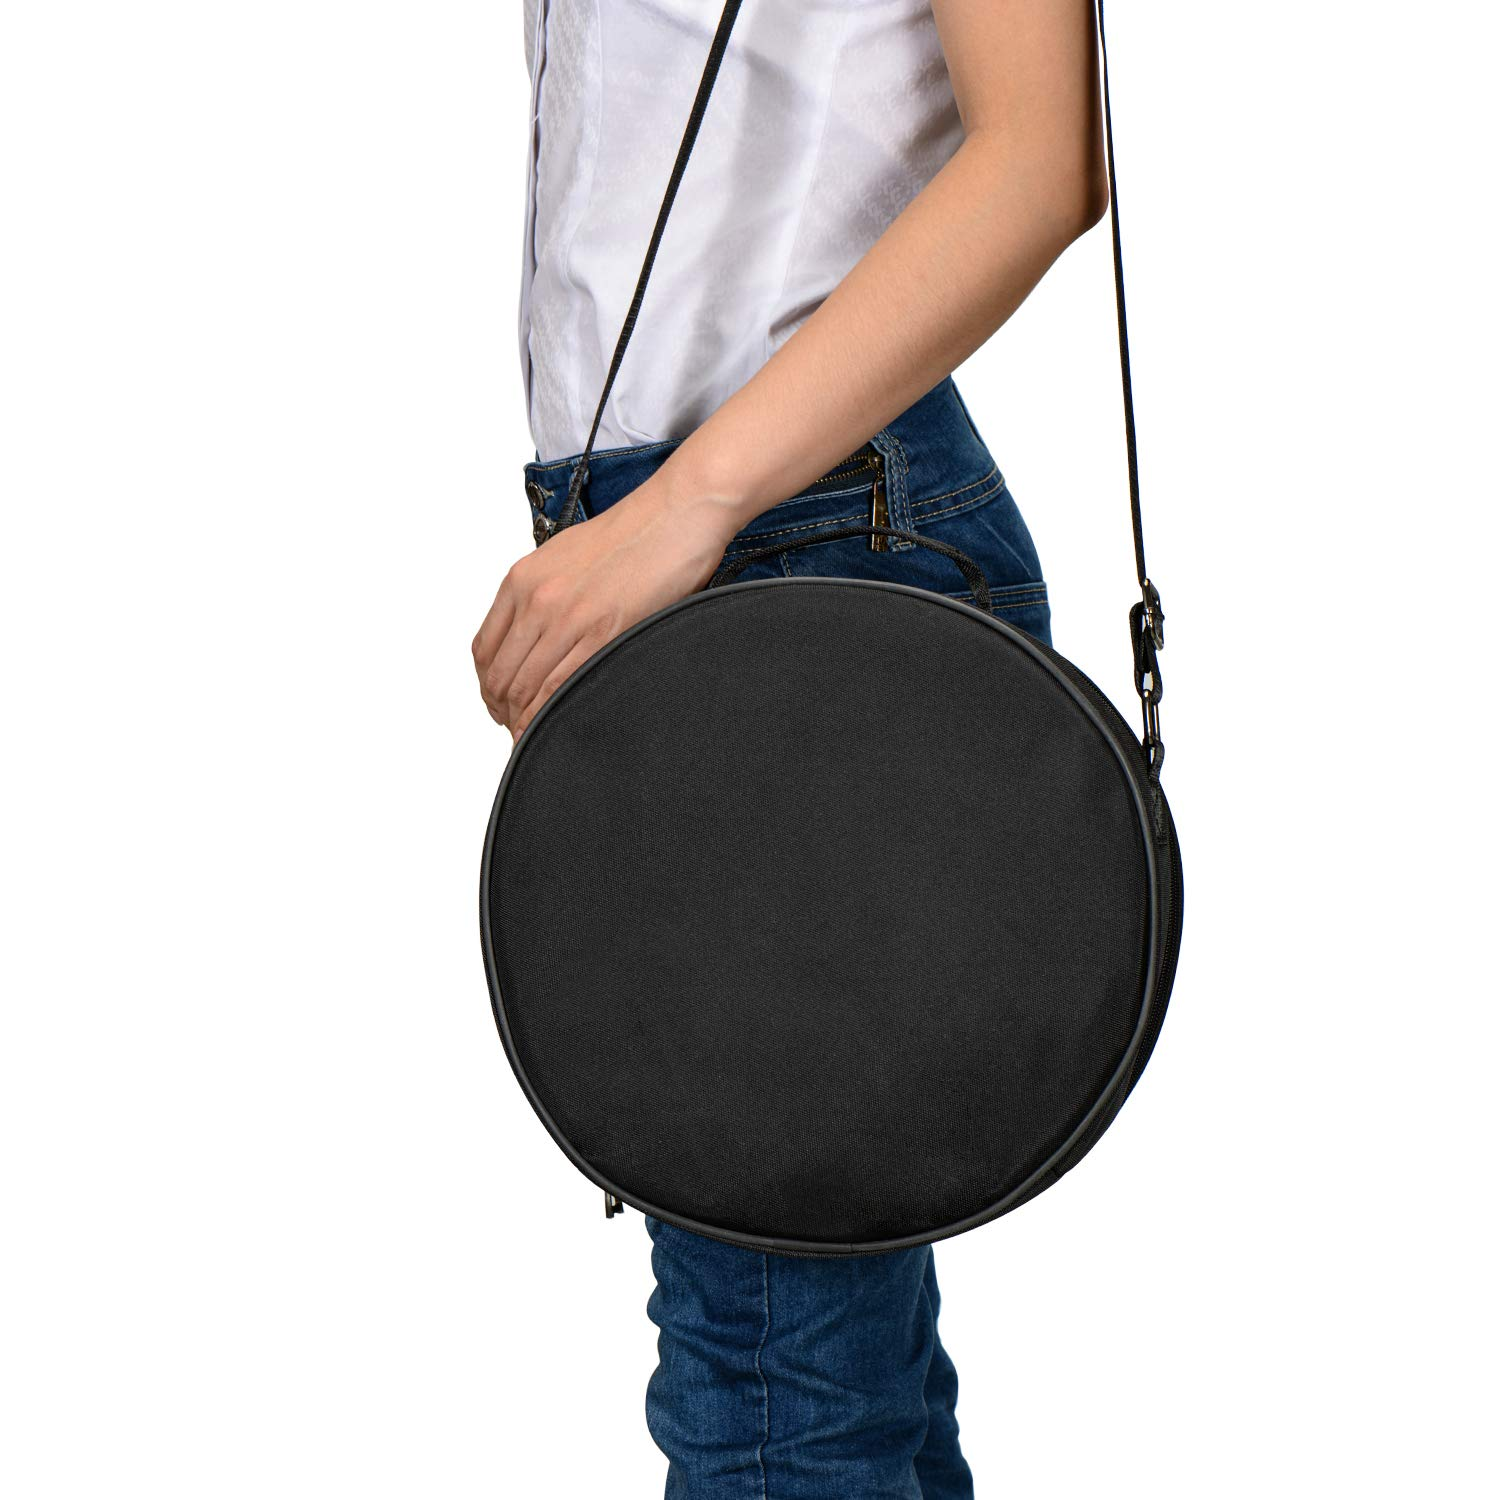 12 Inch 13 Note Steel Tongue Drum Percussion Instrument Lotus Hand Pan Drum with Drum Mallets Carry Bag by Rakumi (Image #6)